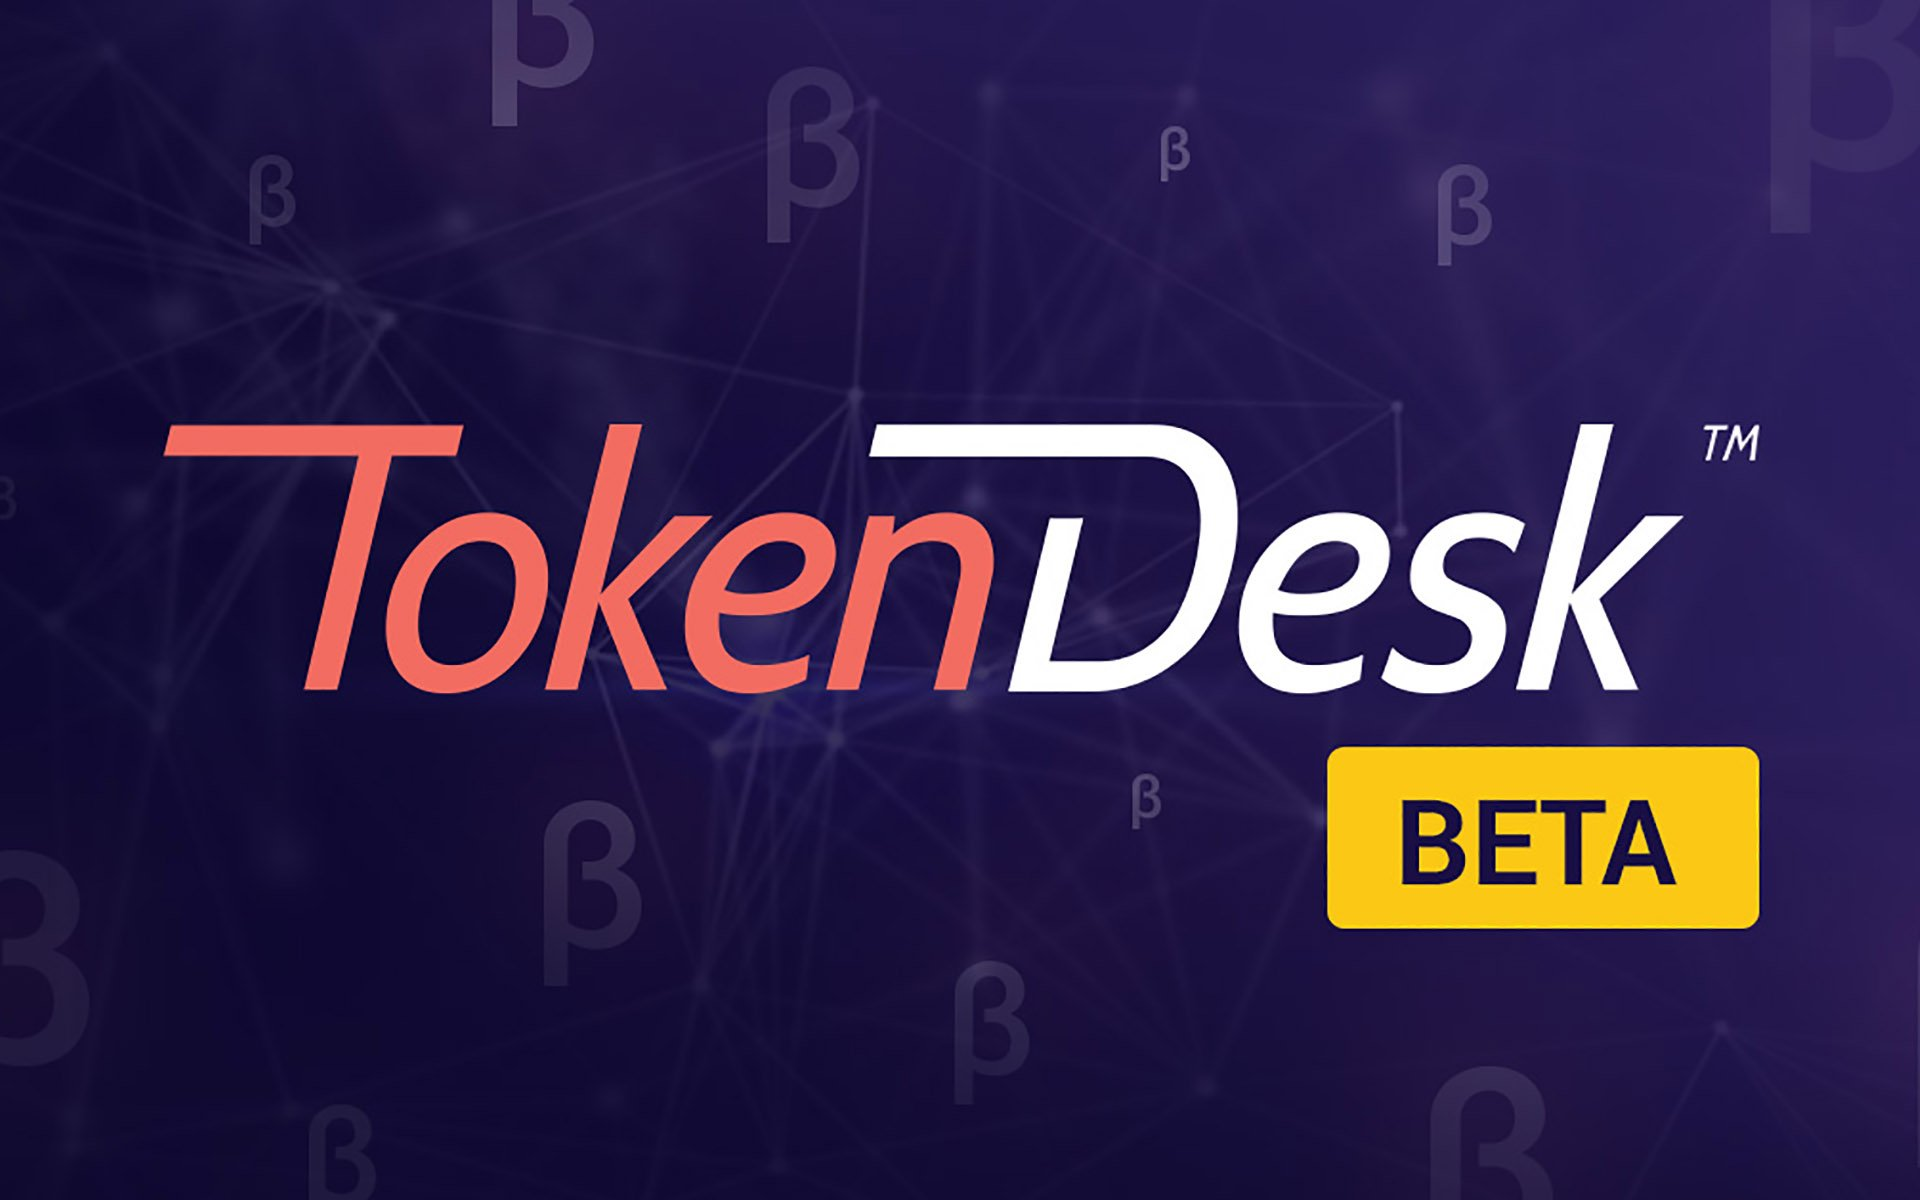 TokenDesk Beta Is Out: ICO Refunds Are Now Possible!